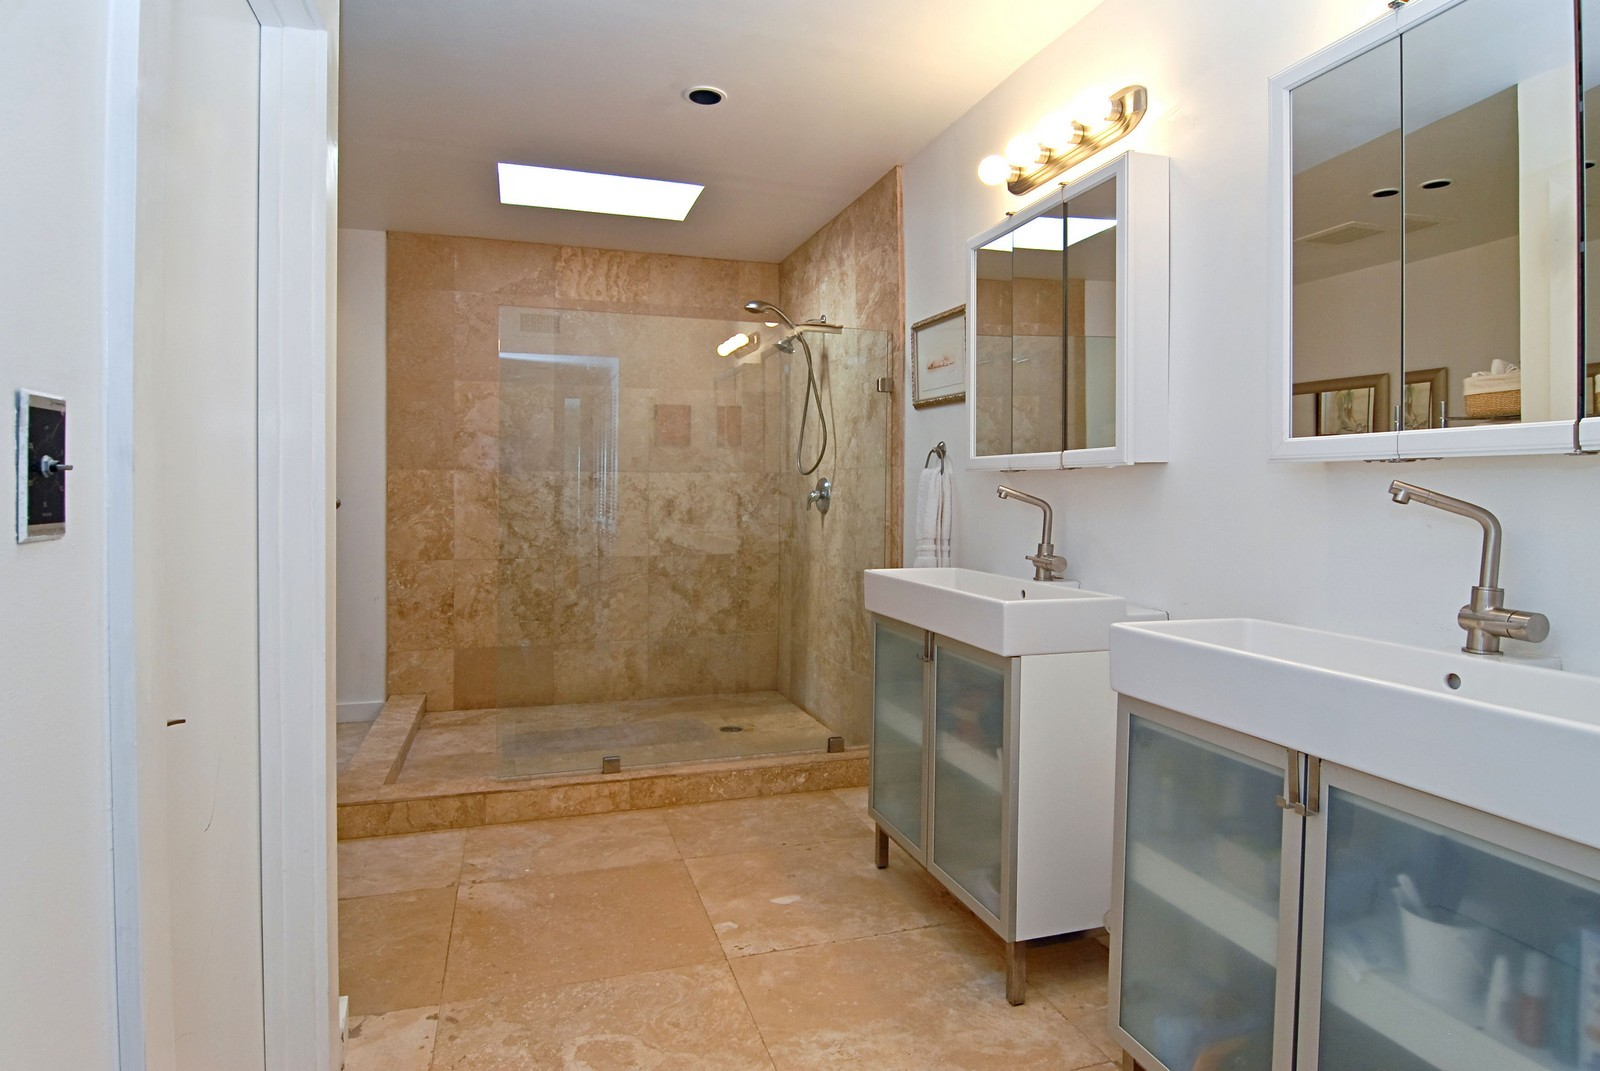 Real Estate Photography - 1320 Still Water Dr, Miami, FL, 33141 - Master Bathroom